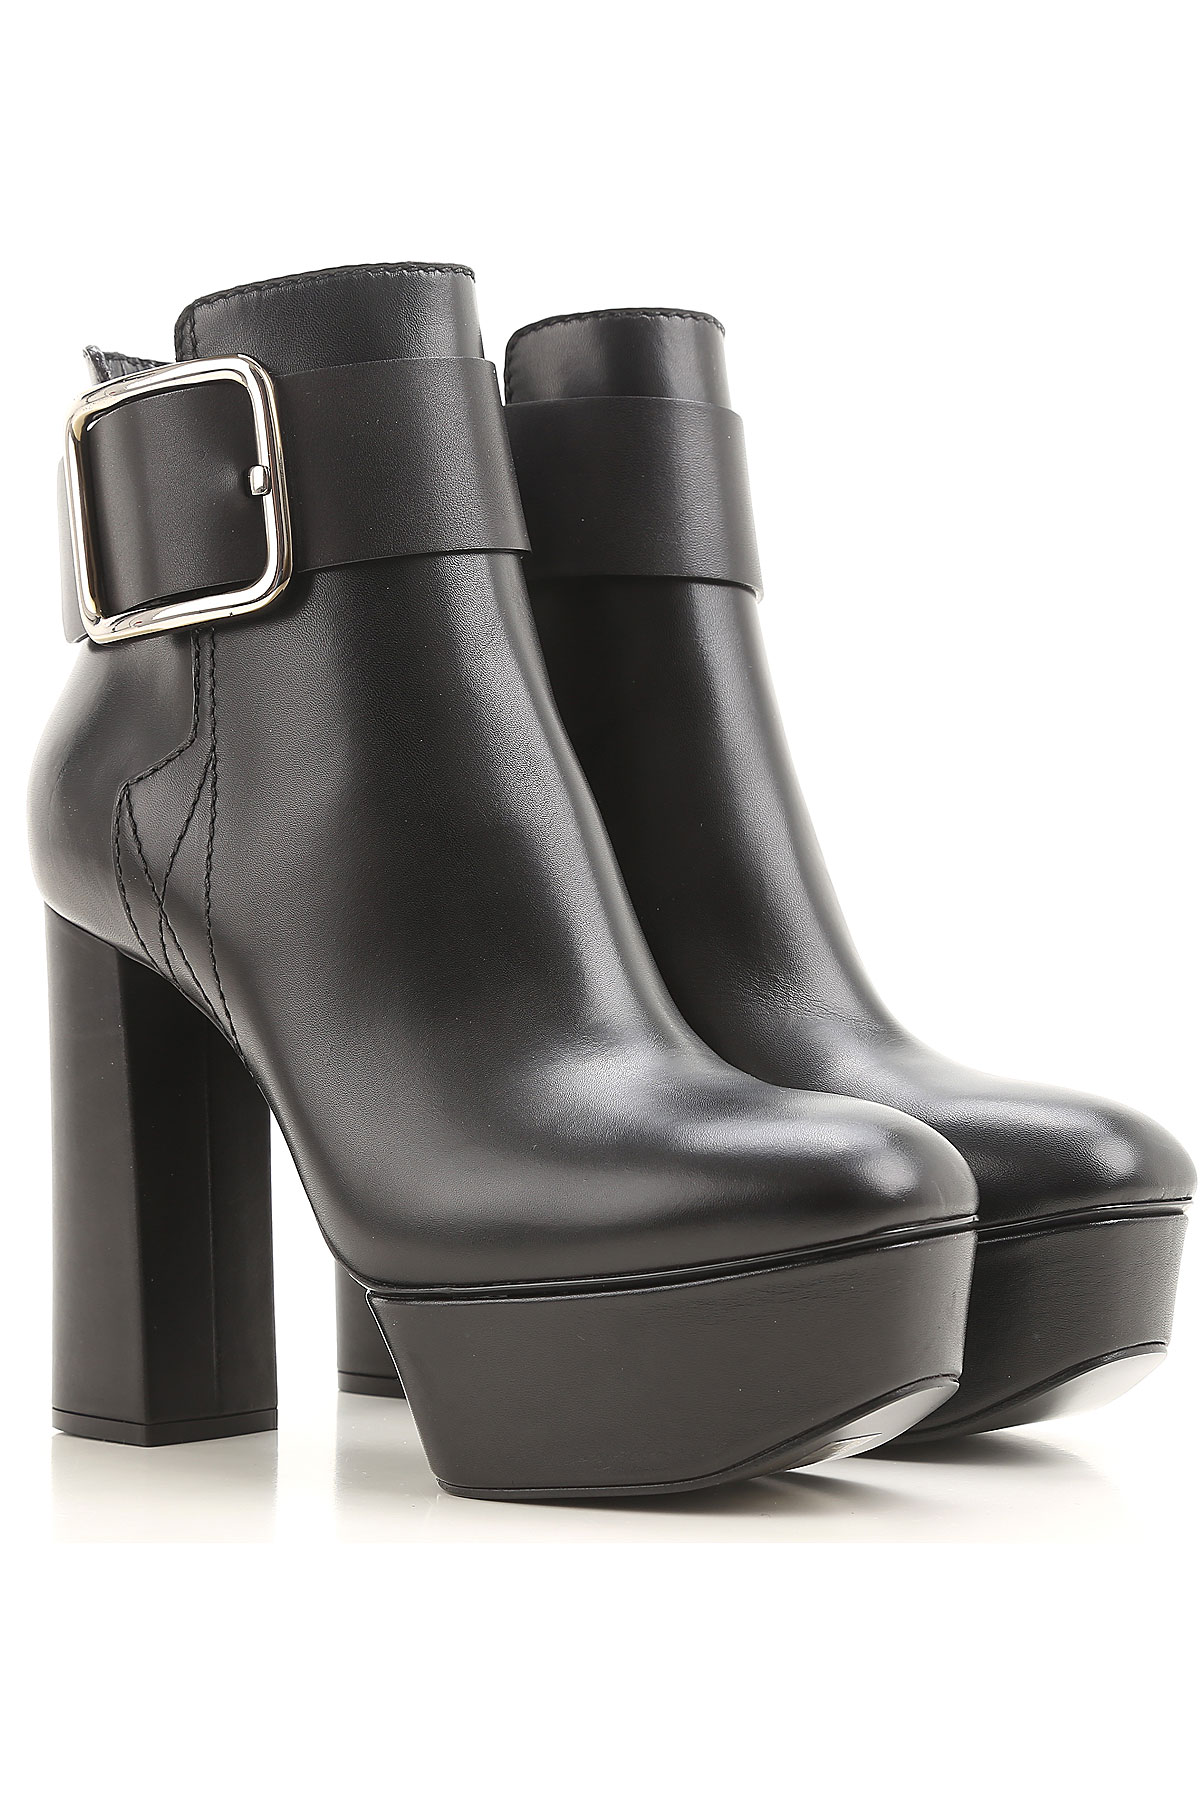 Image of Casadei Boots for Women, Booties On Sale in Outlet, Black, Leather, 2017, 10 5 8.5 9